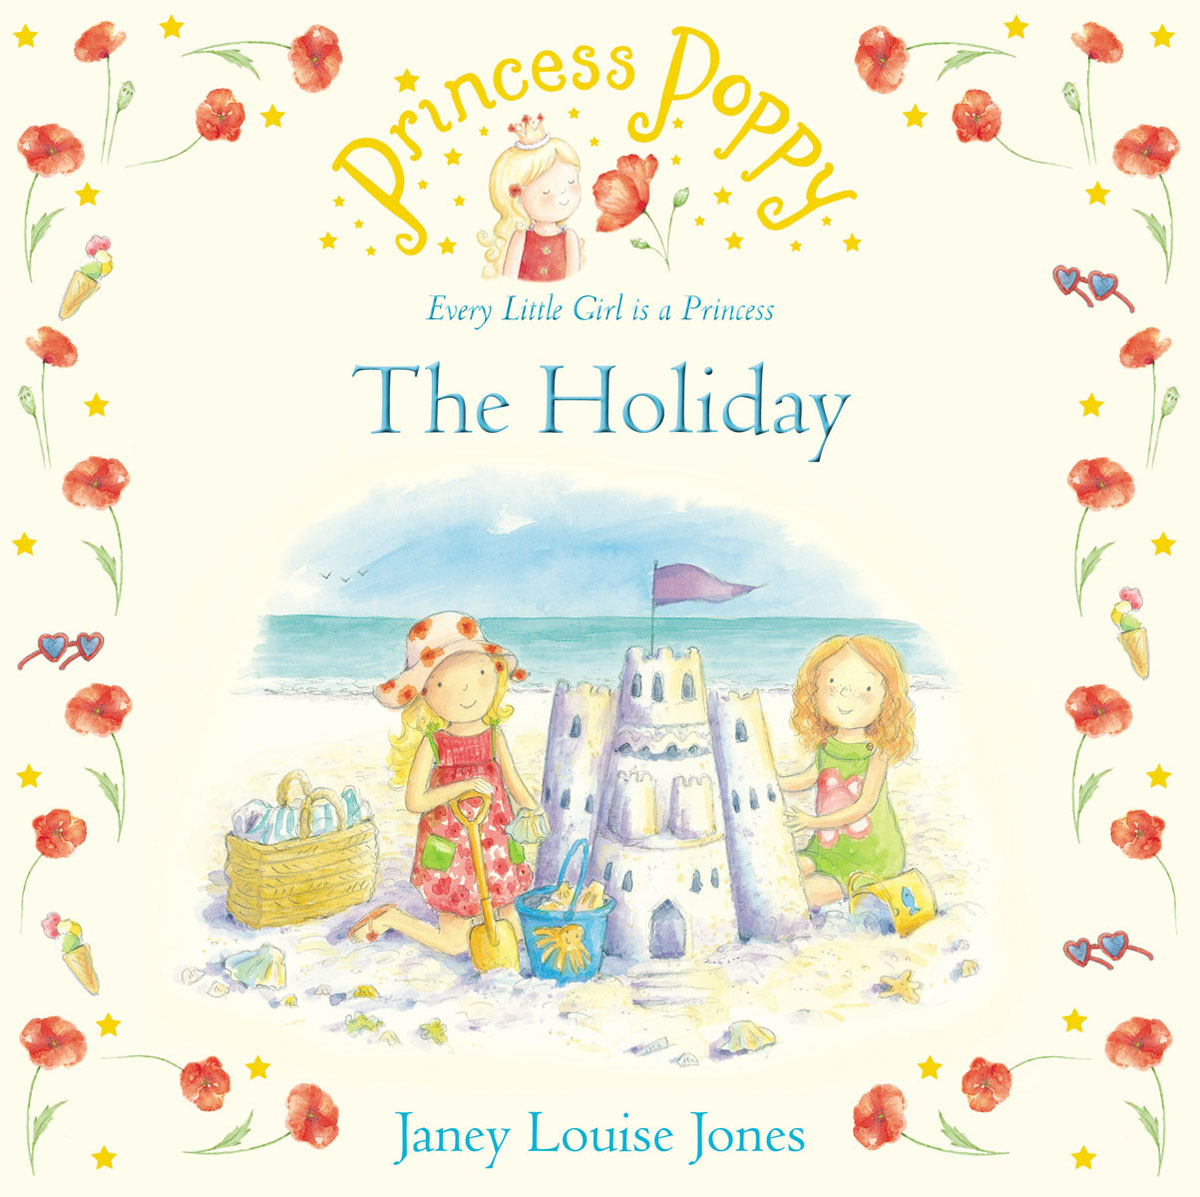 Princess Poppy: The Holiday trouble makes a comeback